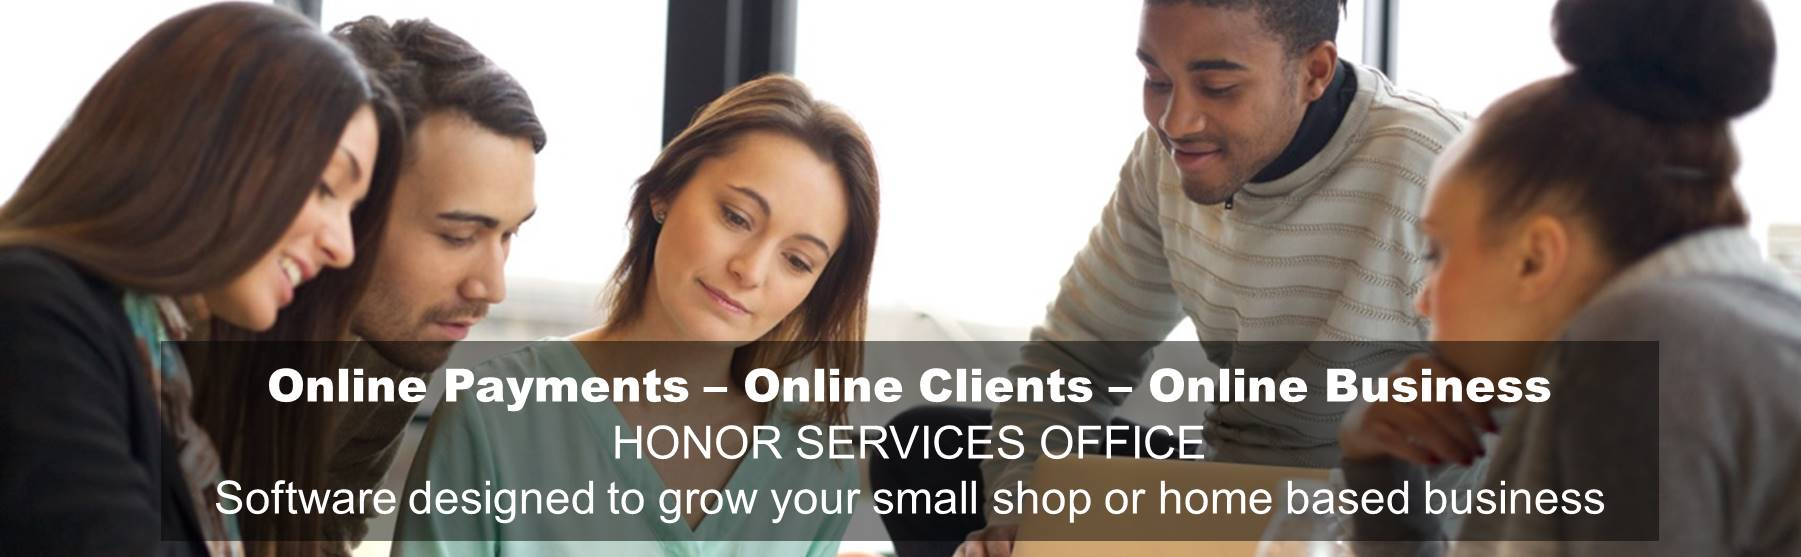 Honor Services Office